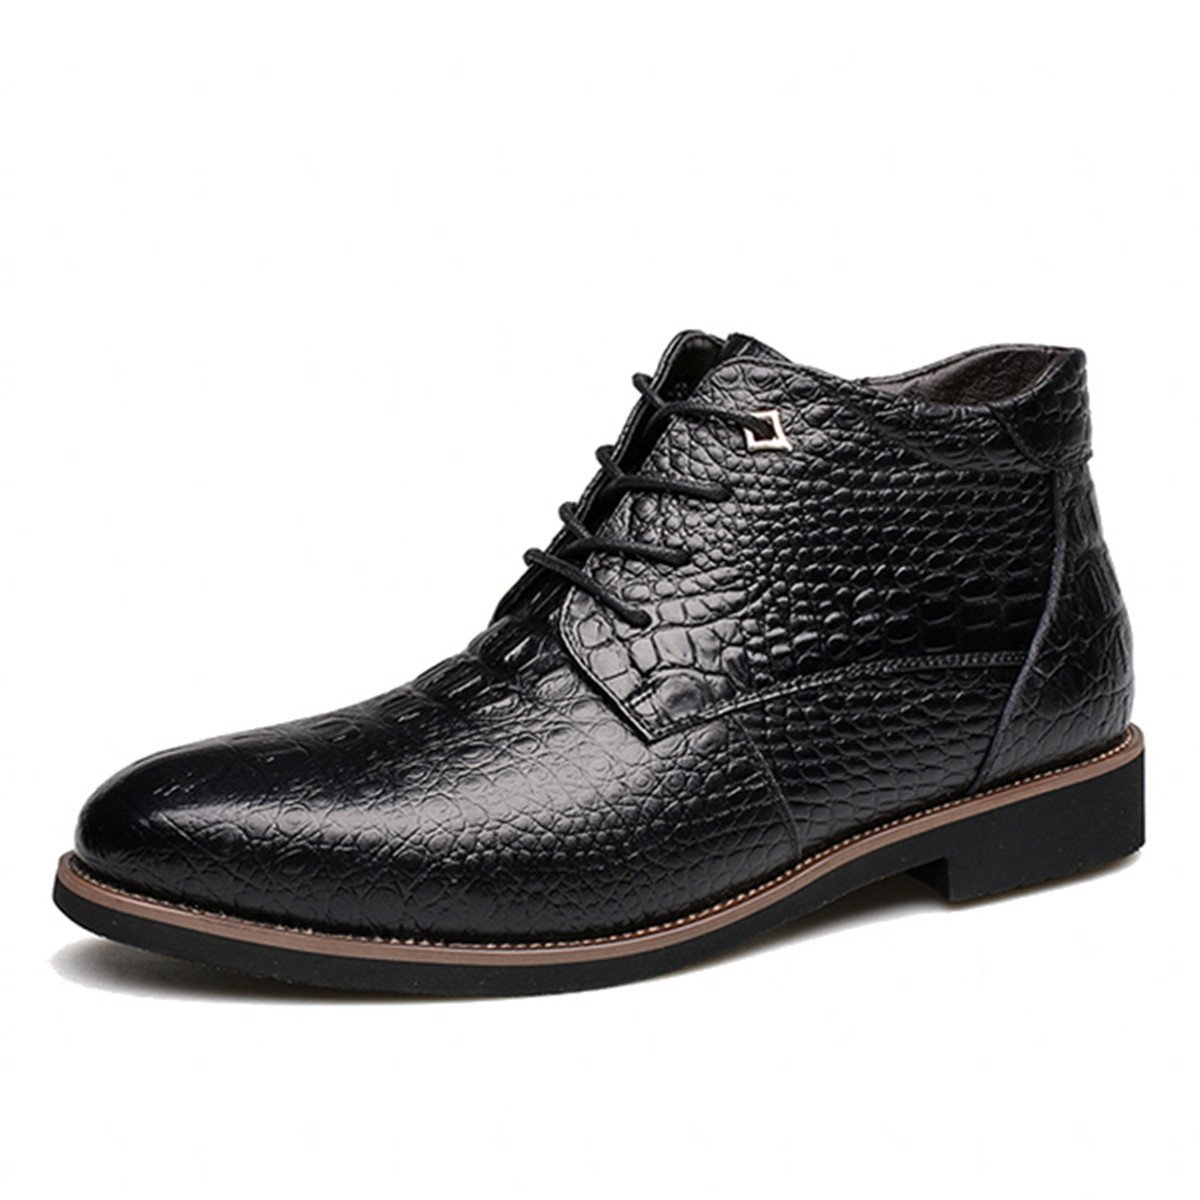 d7d17e01d9d gracosy Men's Leather Boots, Winter Warm Fur Lining Oxford Shoes Crocodile  Pattern Lace Up Handmade Boots Martin British Style Leather Work Formal ...